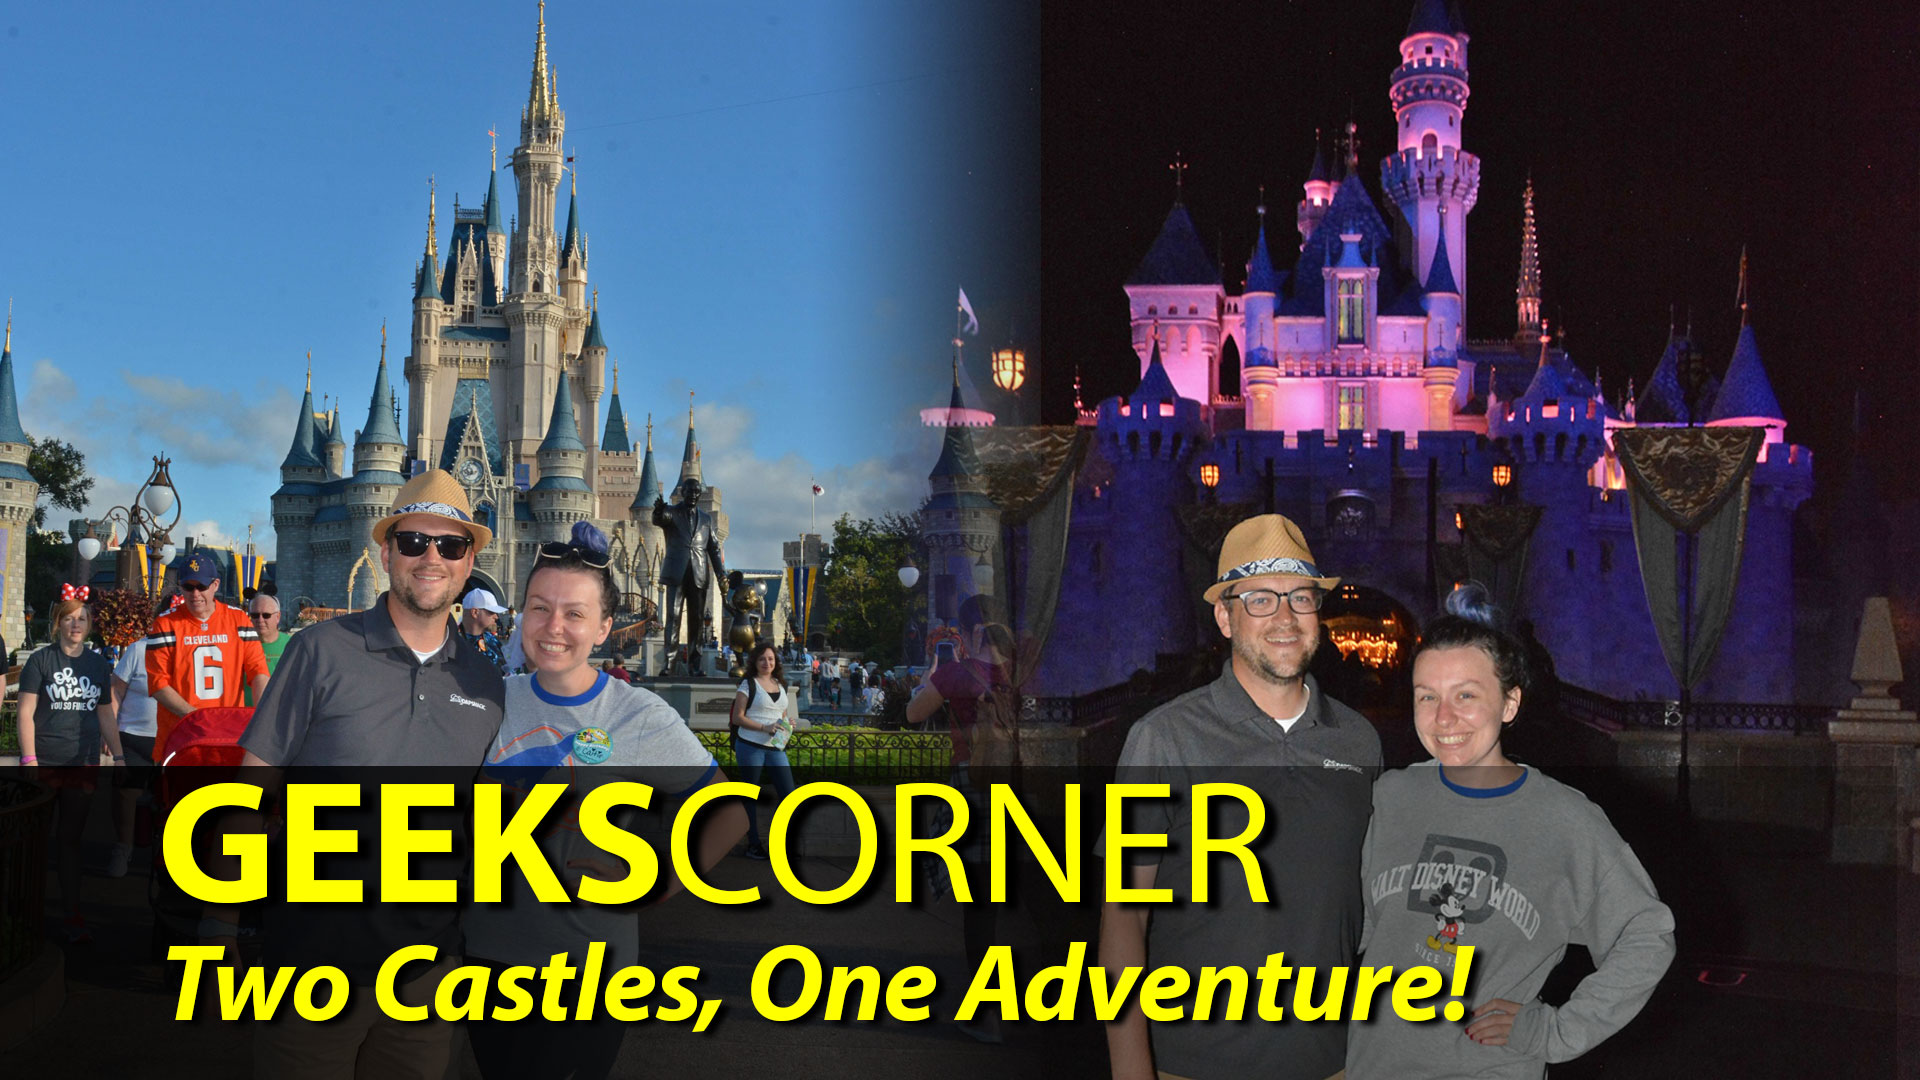 Two Castles, One Adventure! - GEEKS CORNER - Episode 904